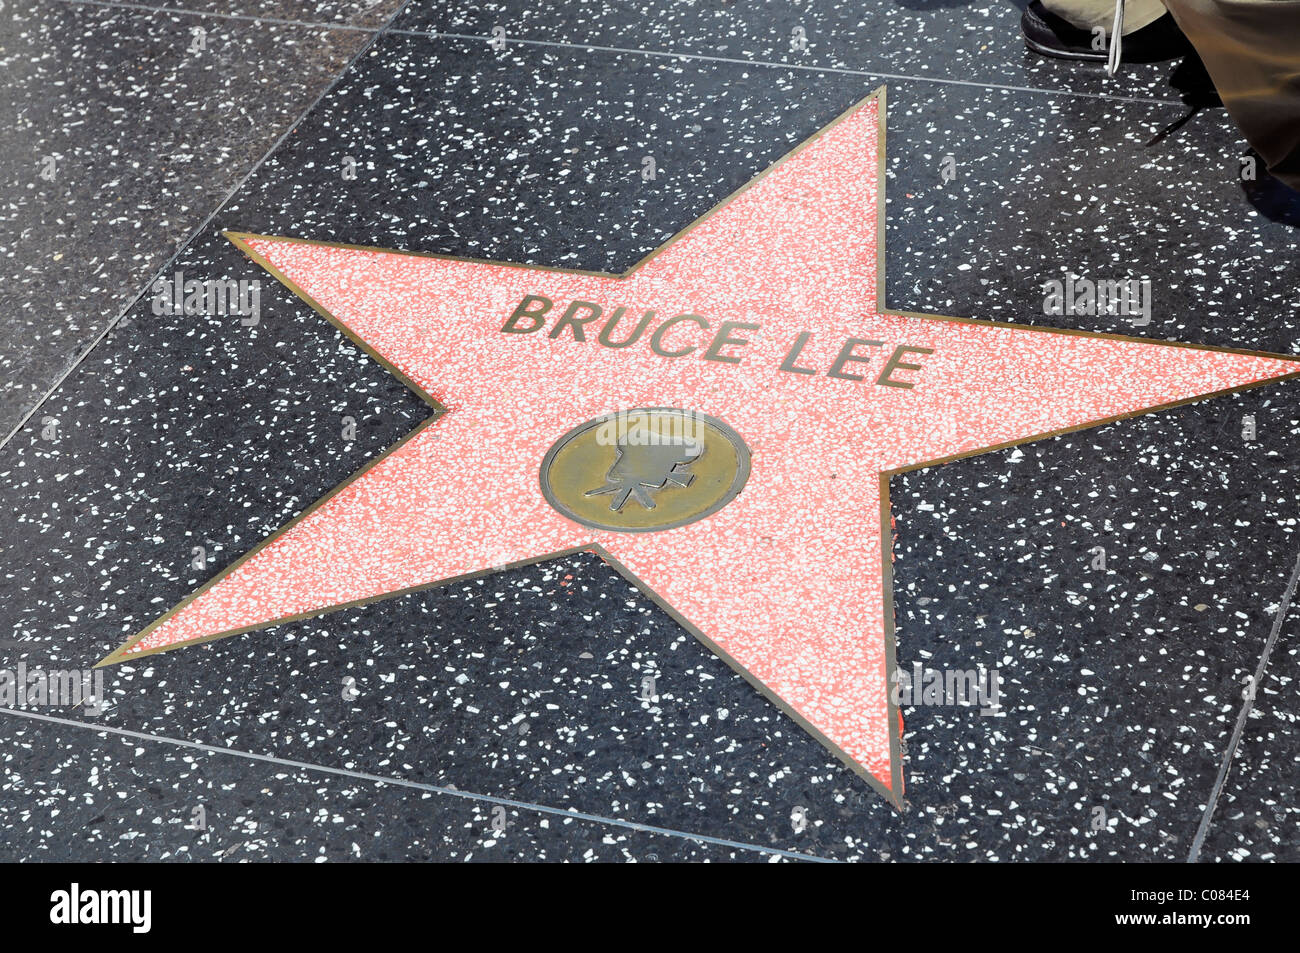 walk of fame bruce lee hollywood boulevard los angeles stock photo 34599884 alamy. Black Bedroom Furniture Sets. Home Design Ideas